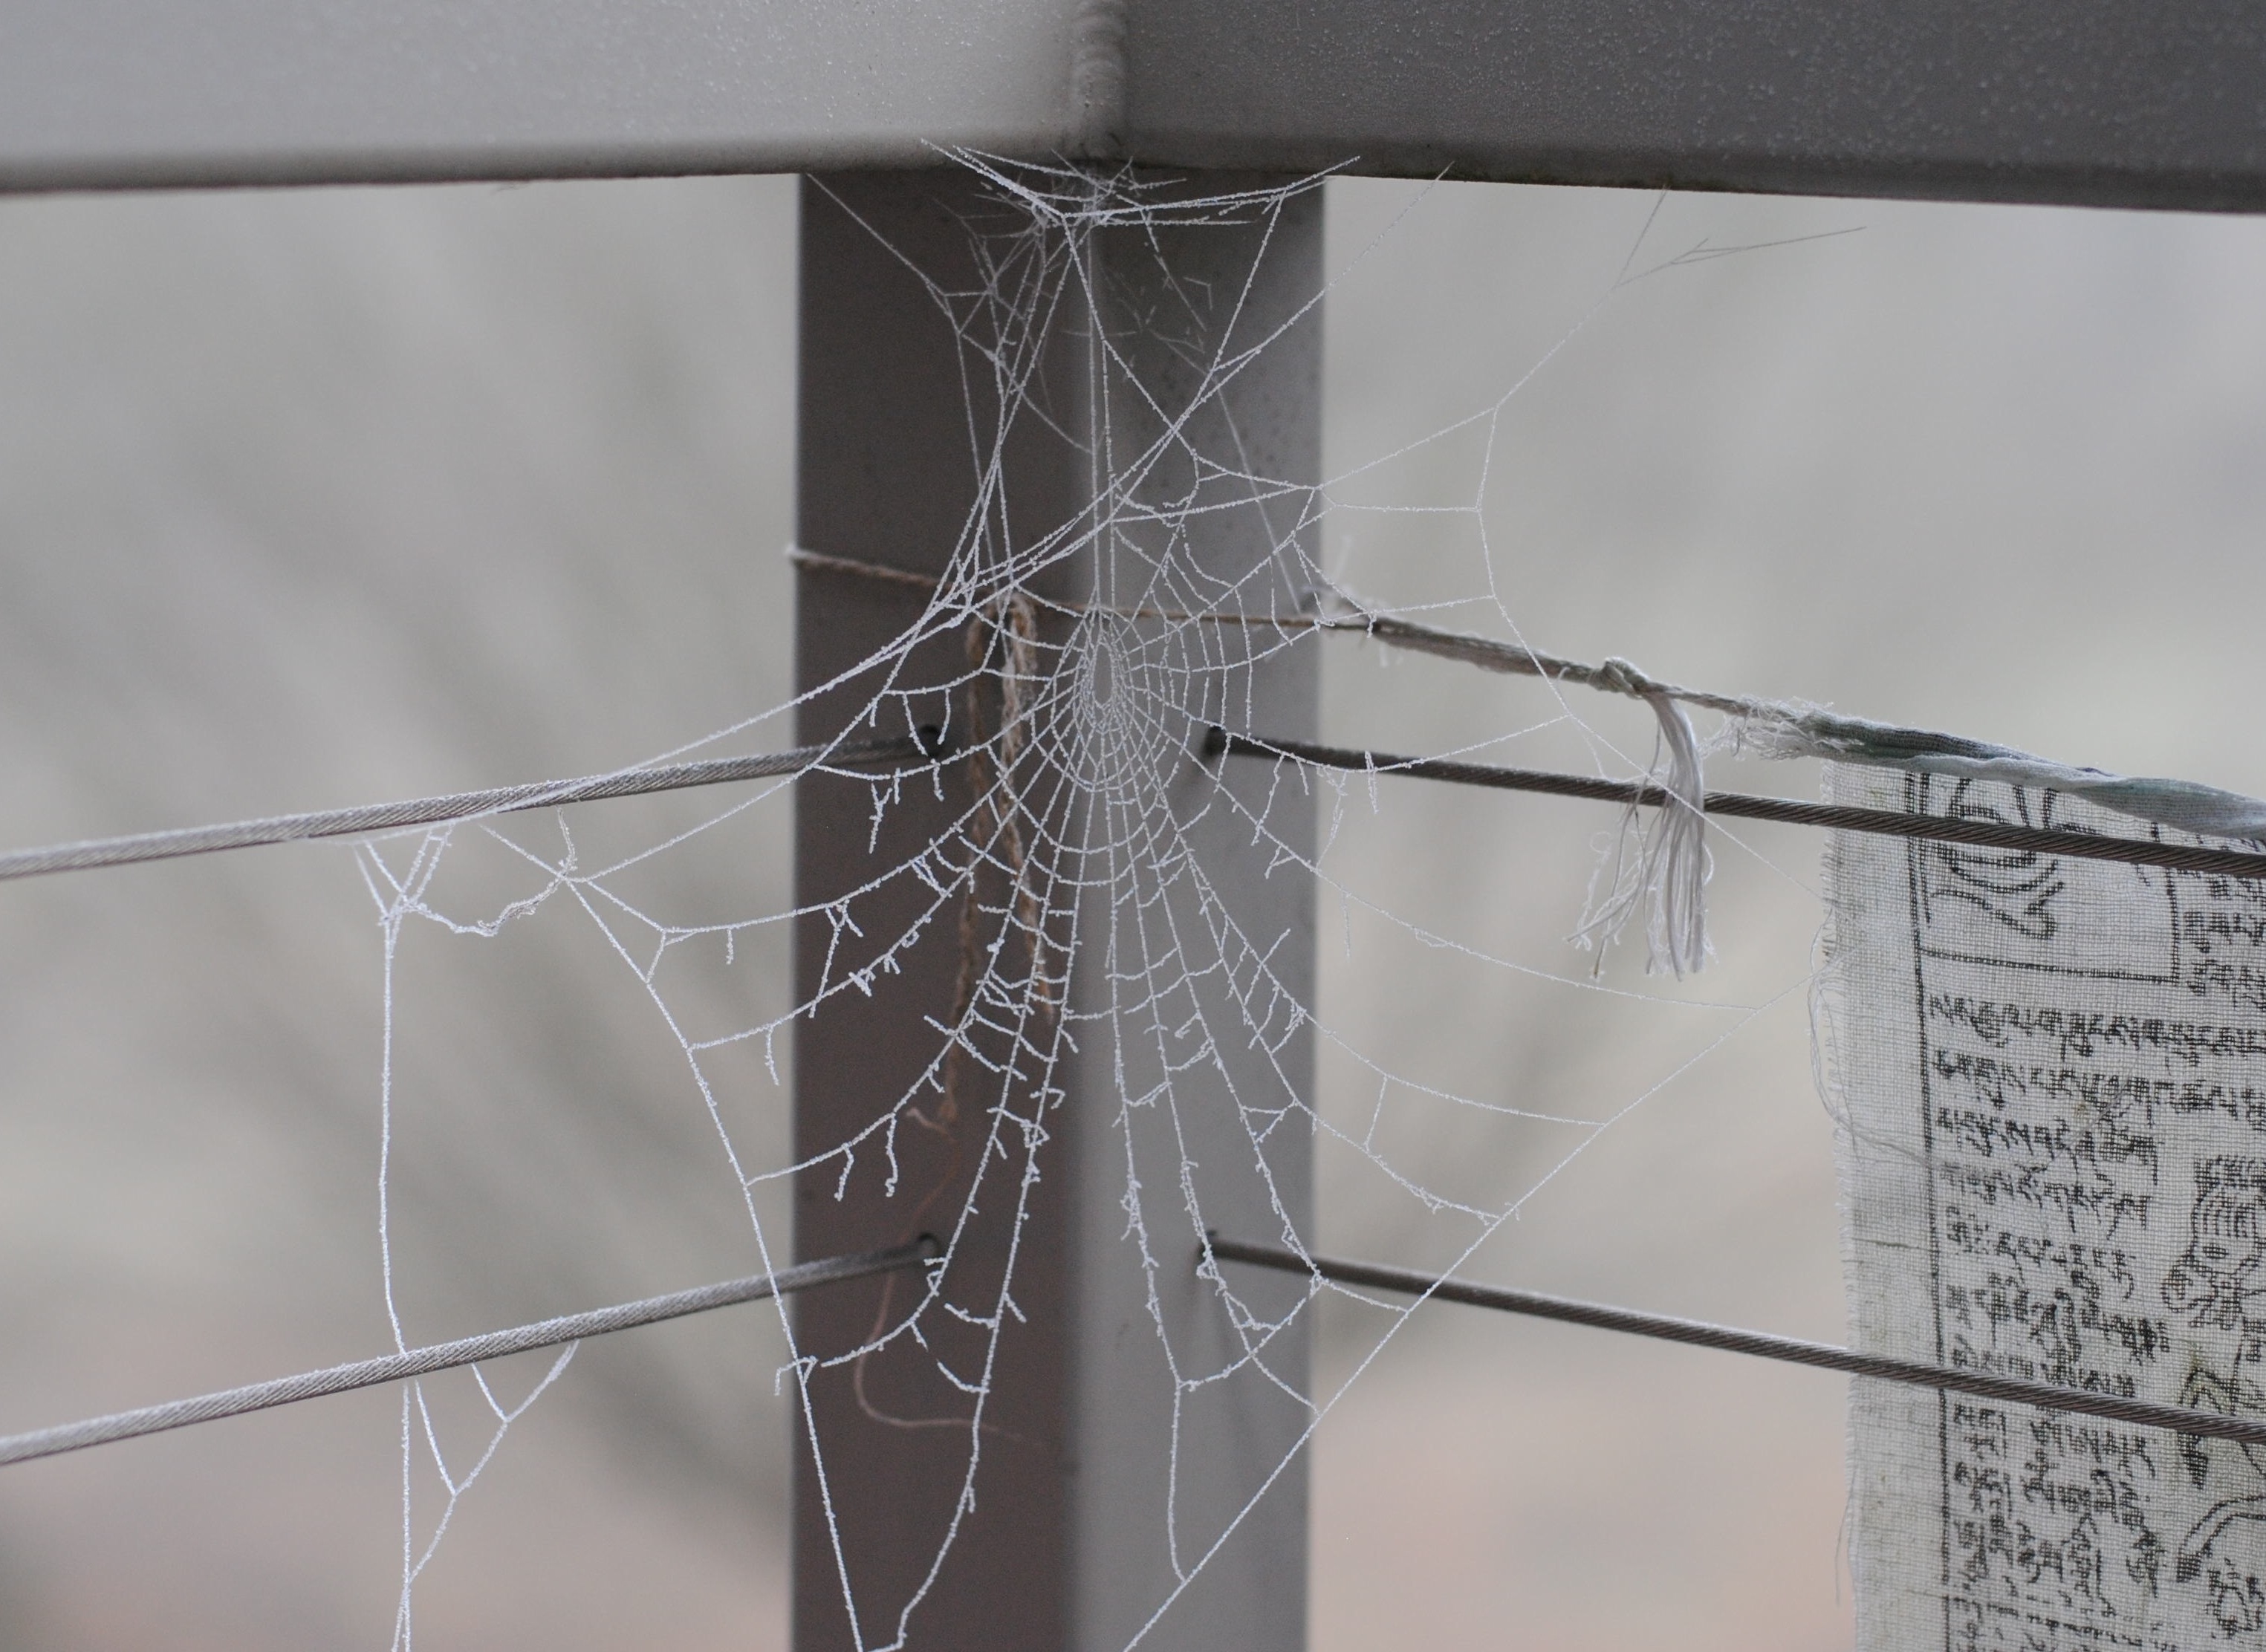 Frozen spider web in Portland